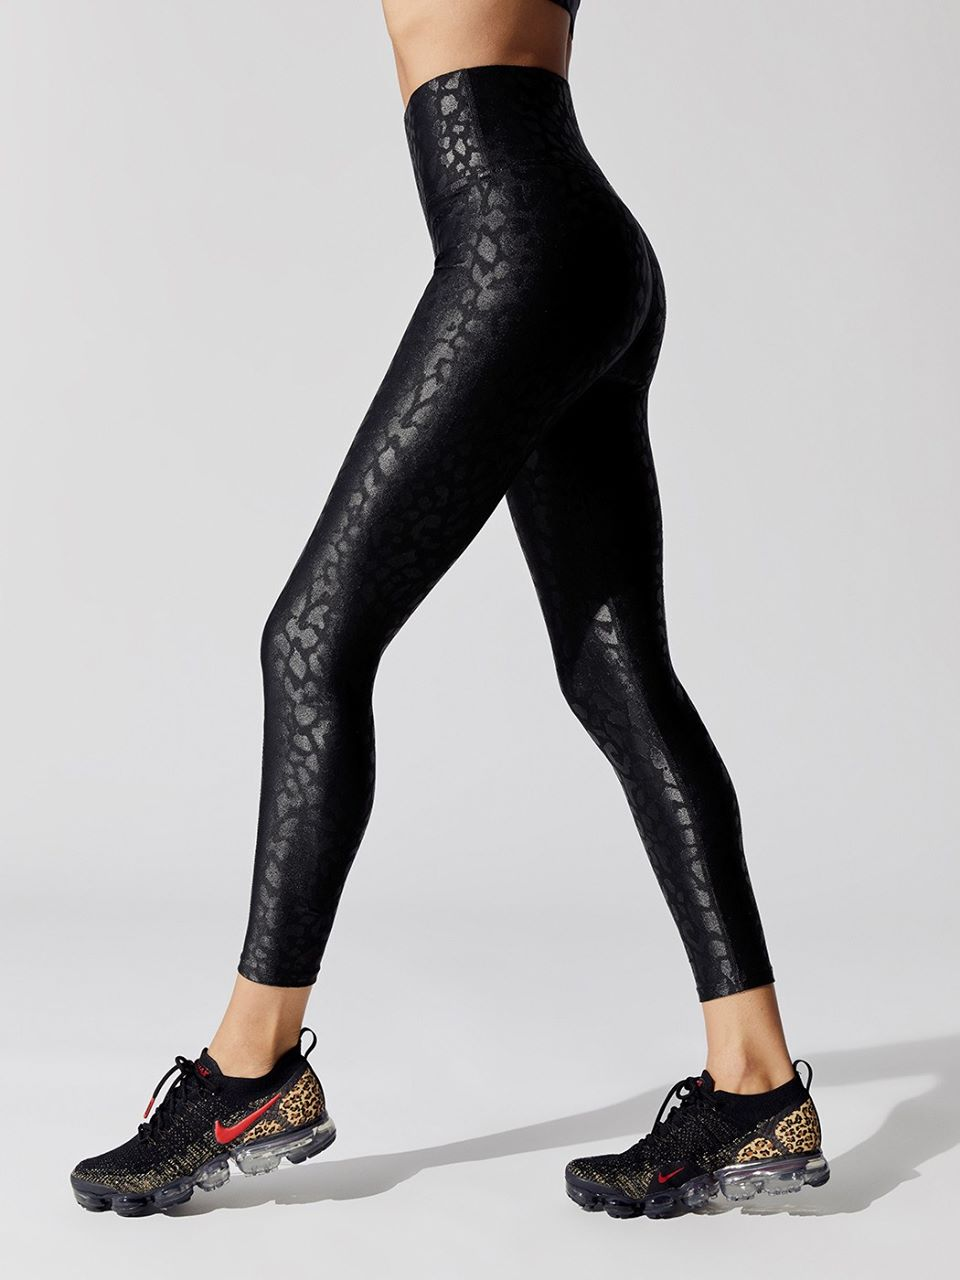 LEOPARD HIGH RISE 7/8 TAKARA LEGGING